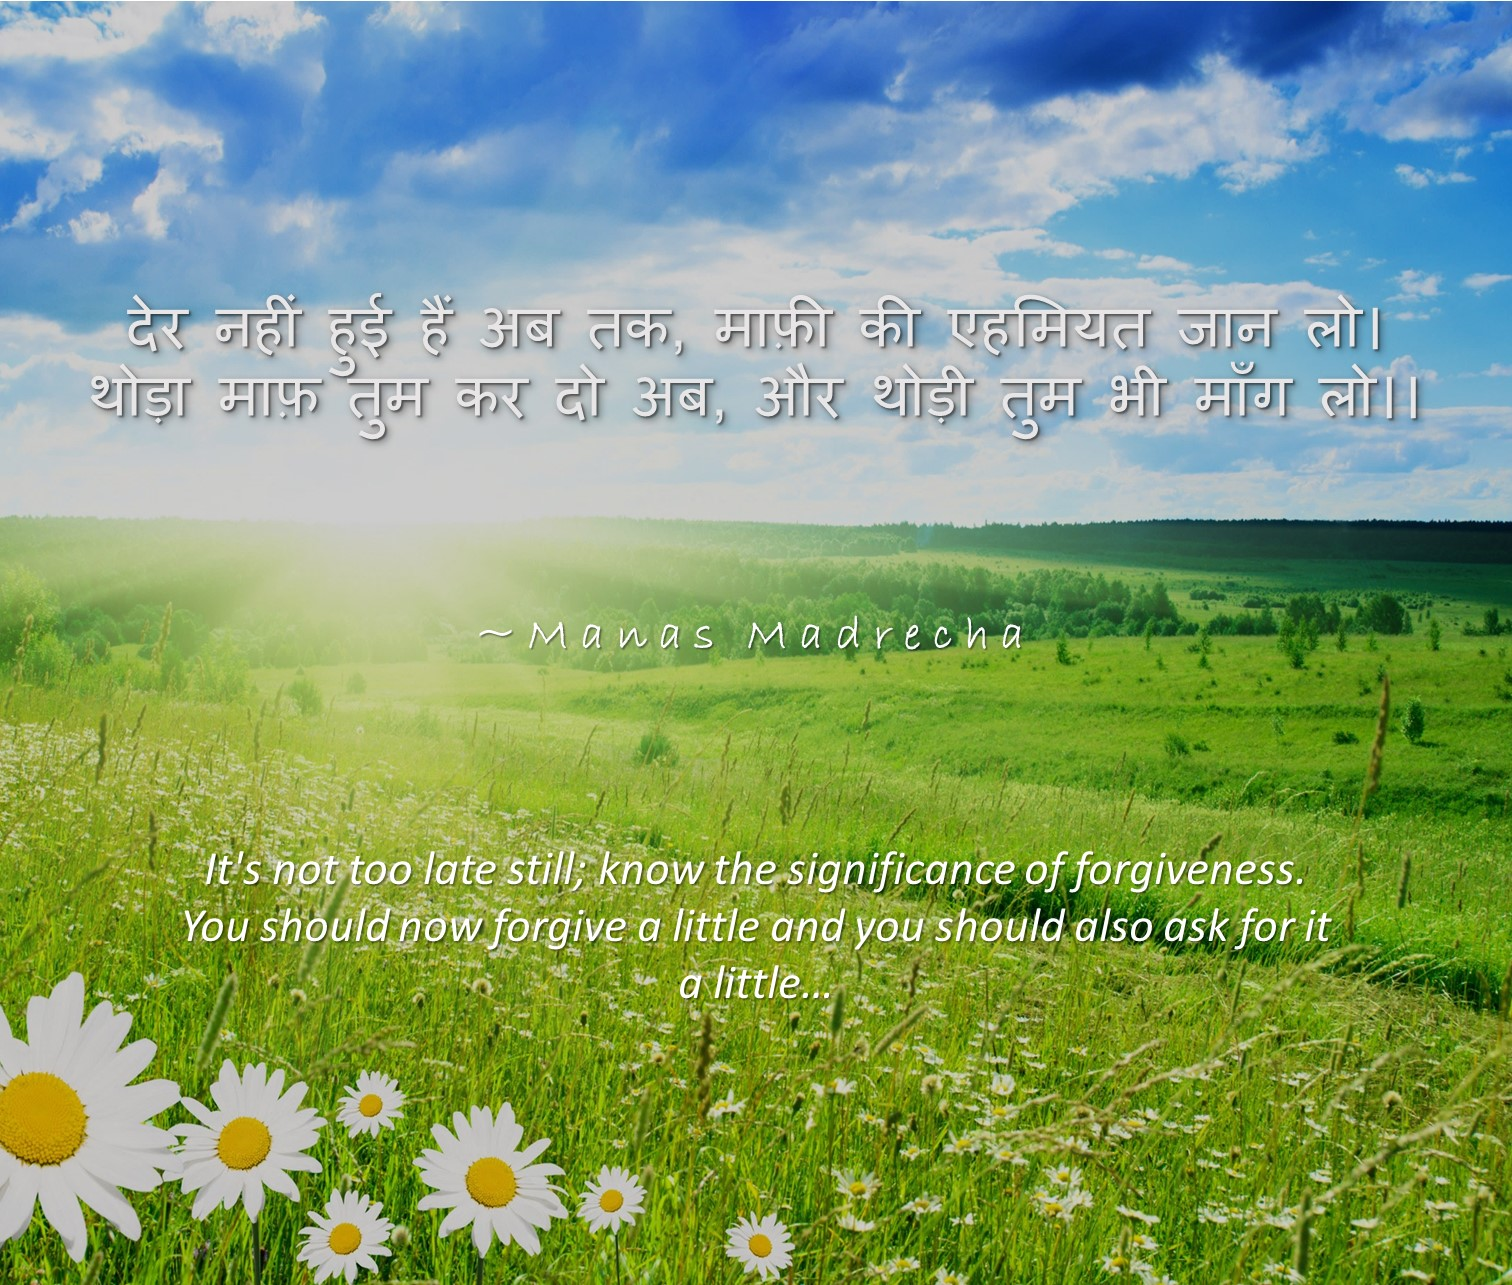 Vengeance Is An Illusion Hindi Poem Best Poems Of All Time